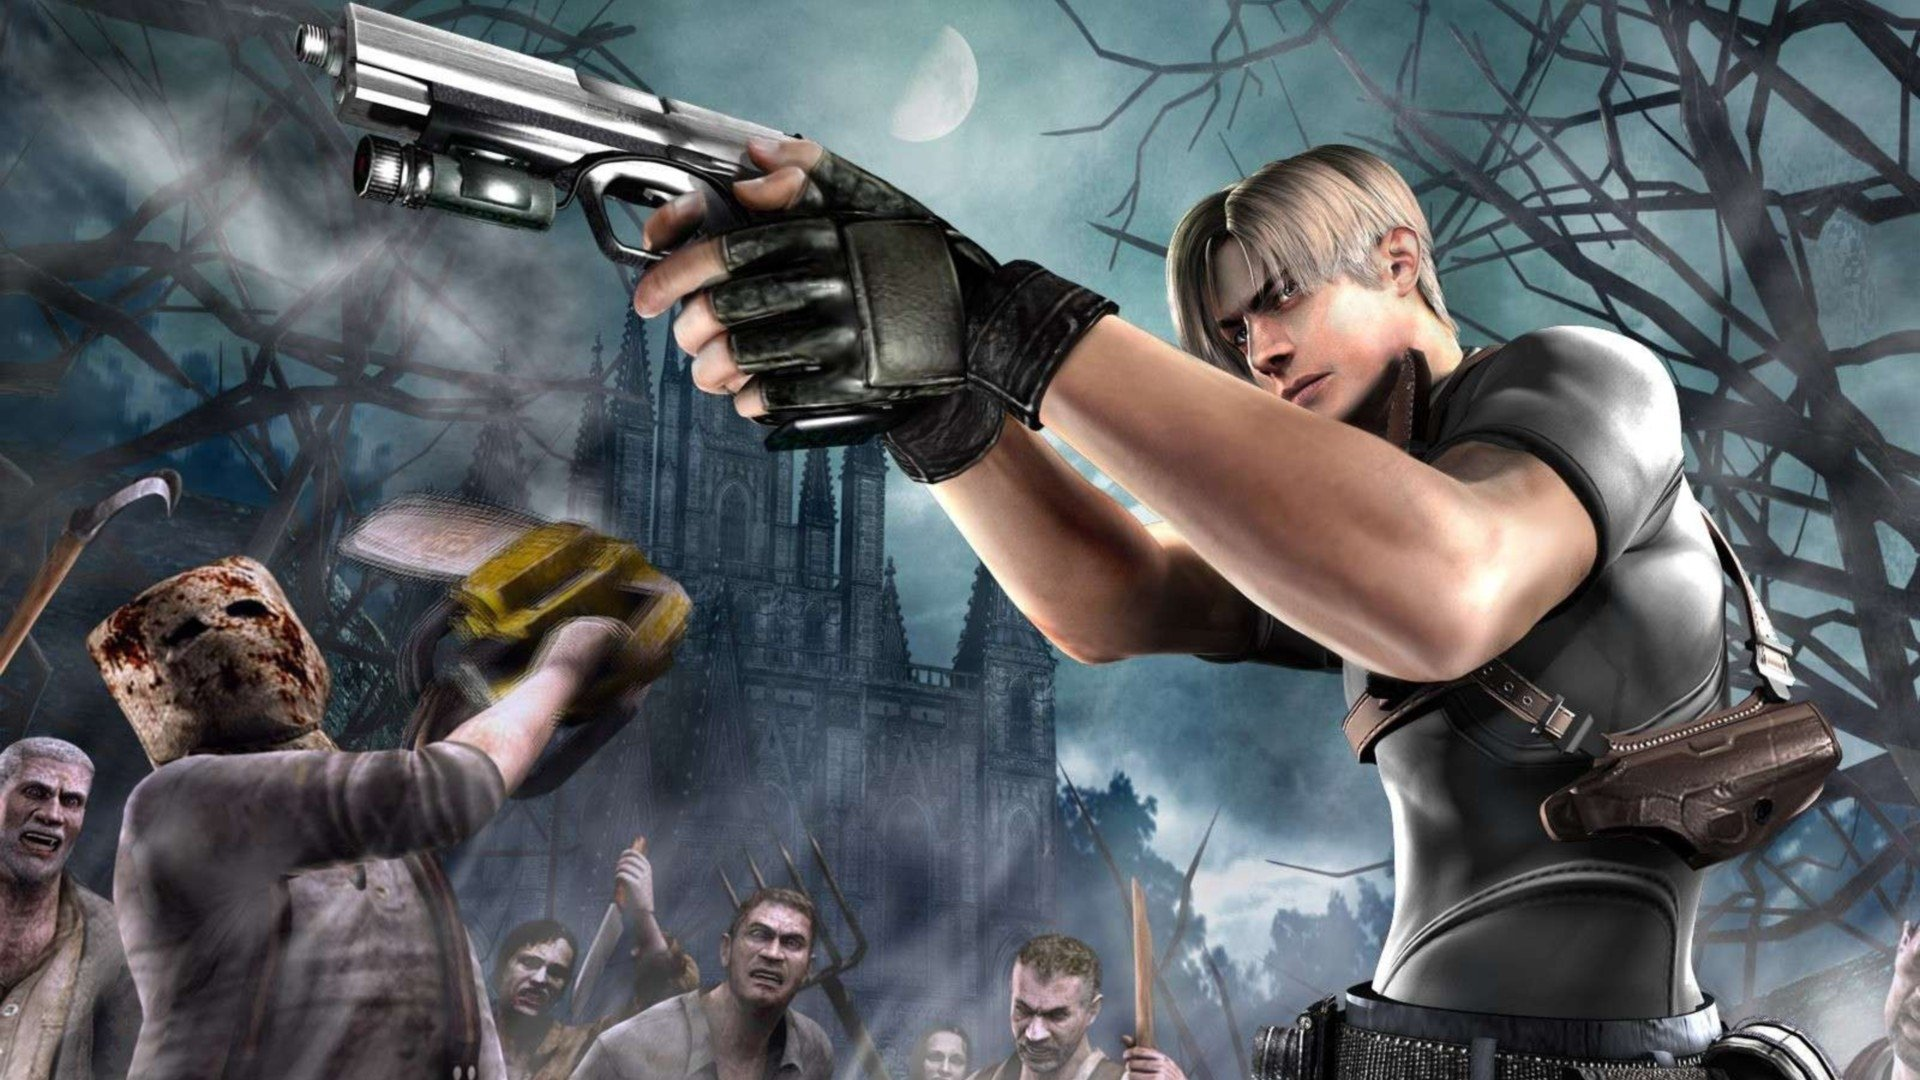 Resident Evil 4 Hd Wallpaper Background Image 1920x1080